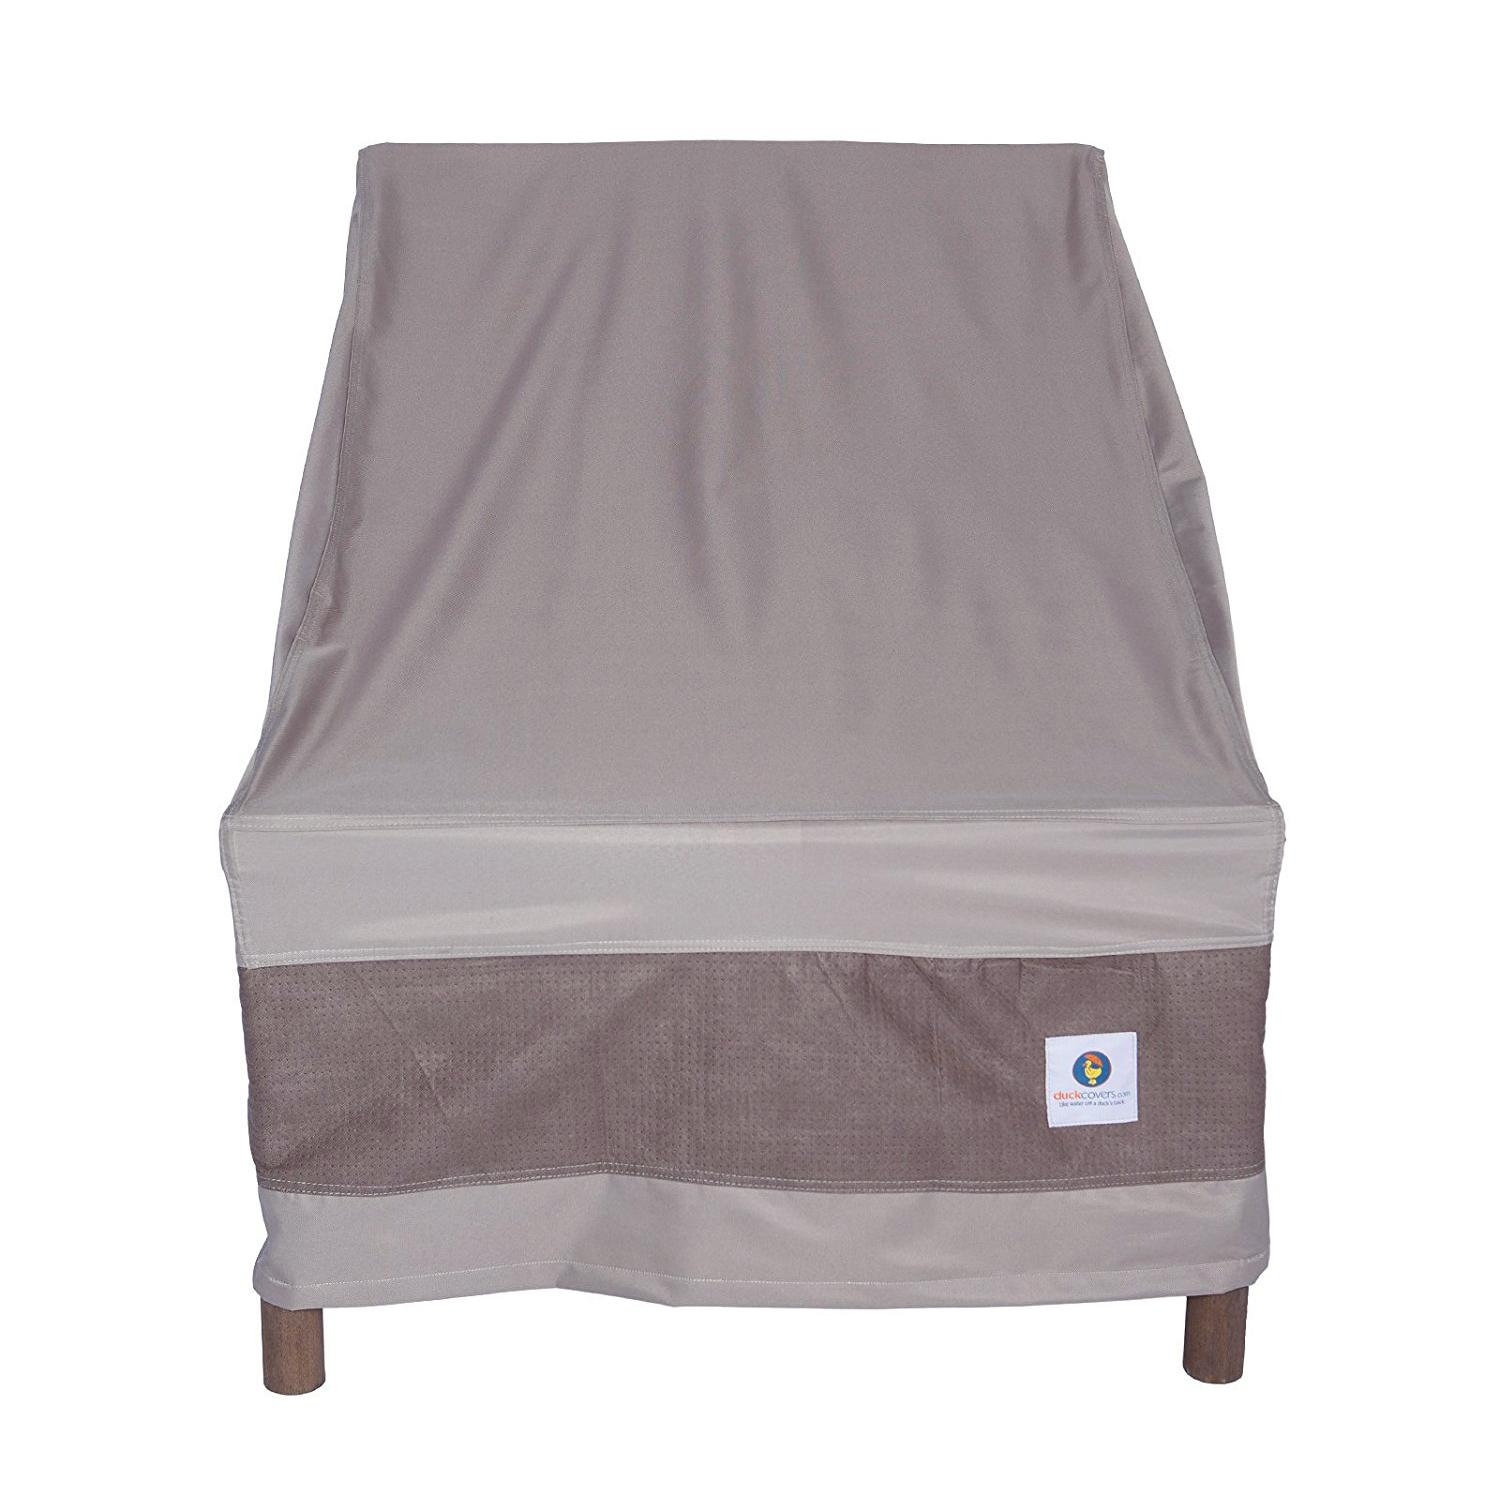 Duck covers elegant stackable patio chair cover 28quot w x for Patio furniture covers amazon ca